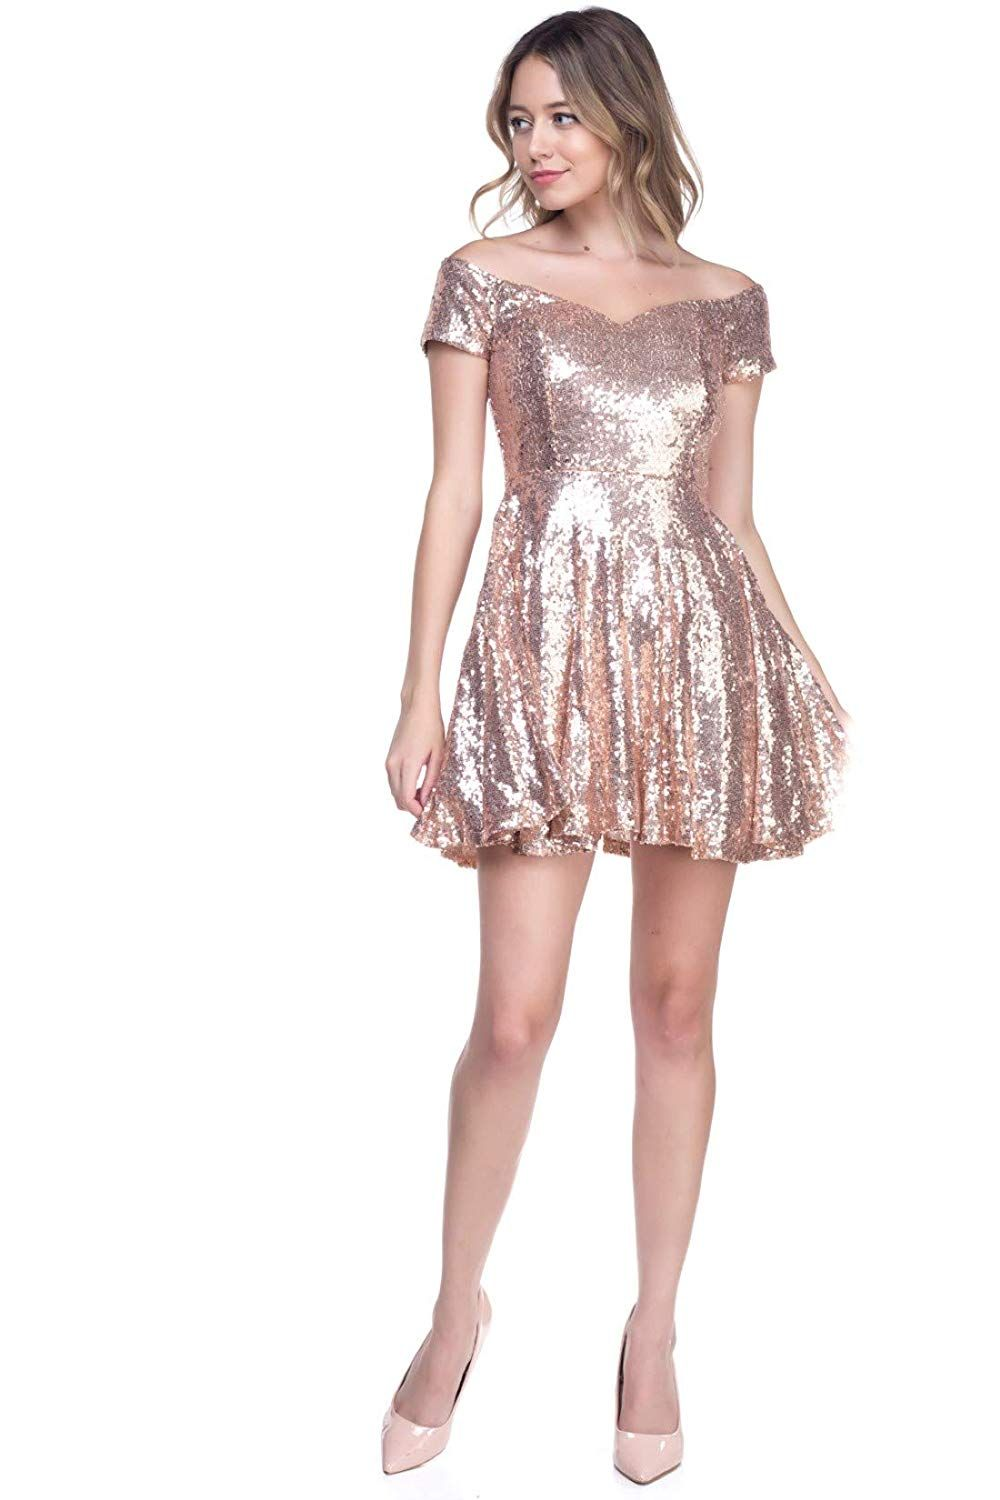 RICARICA Short Puffy Dresses for Home ComingPromSpecial Occasion